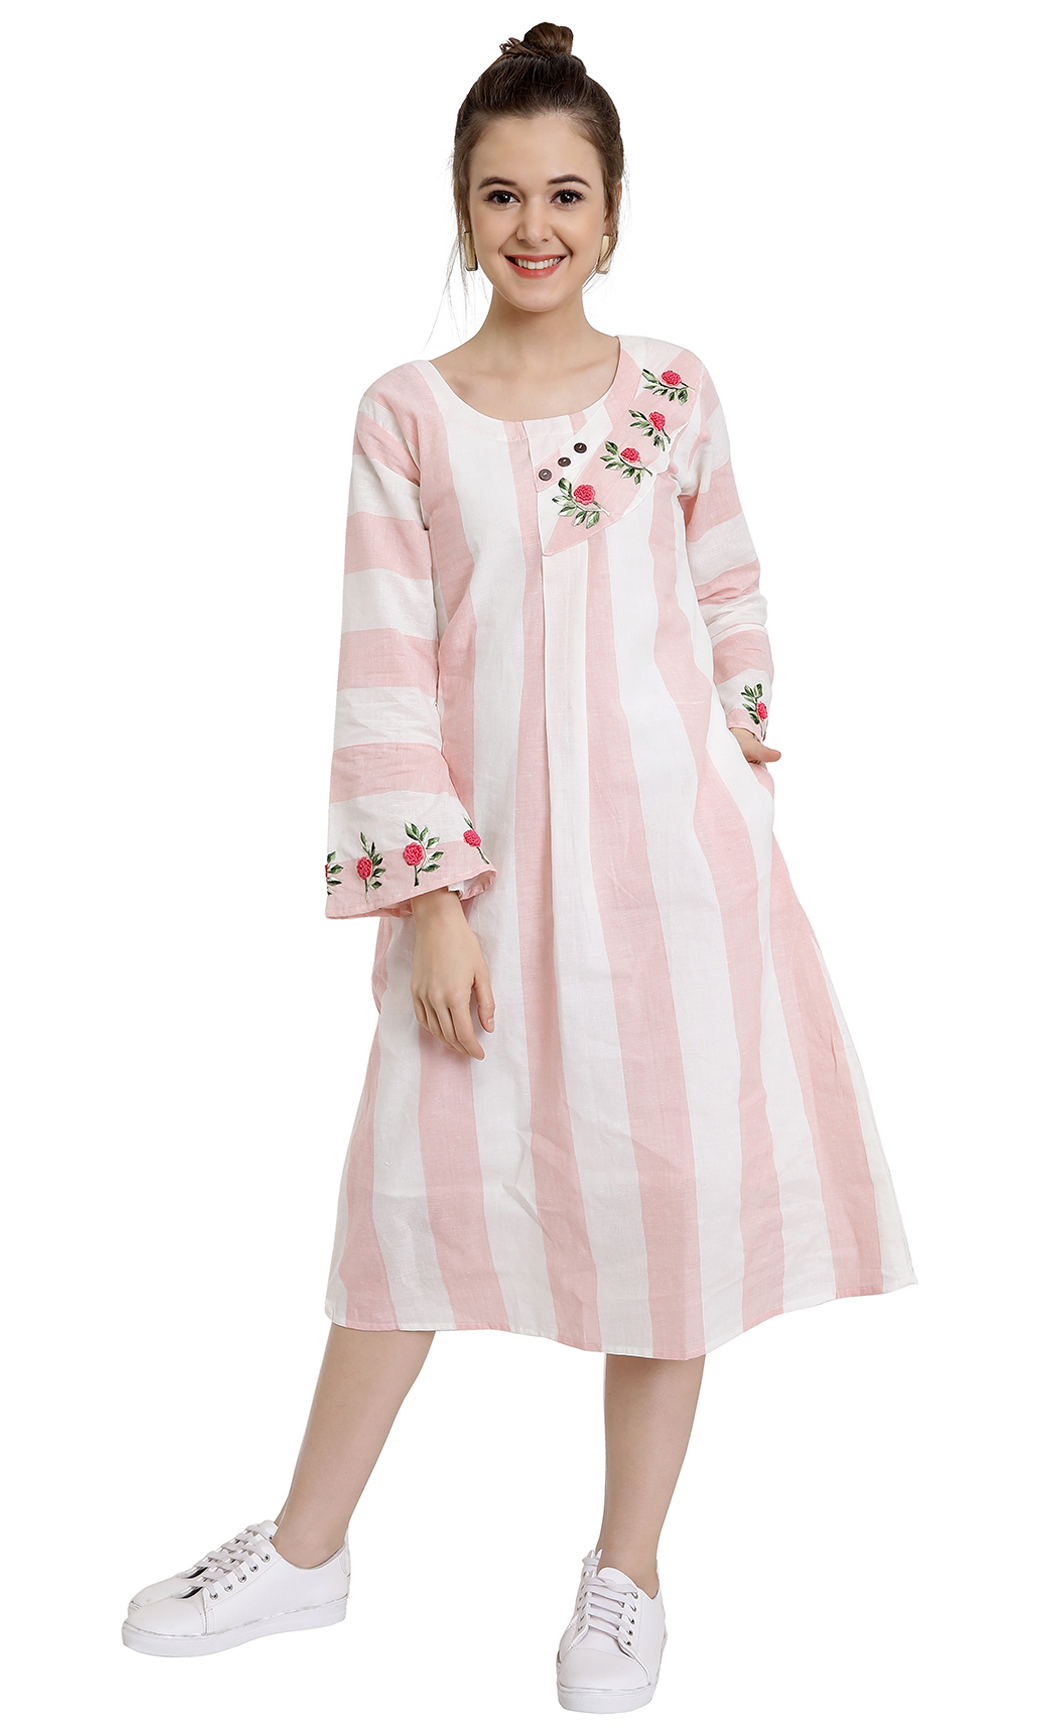 Pink and White Striped Dress. Buy Online